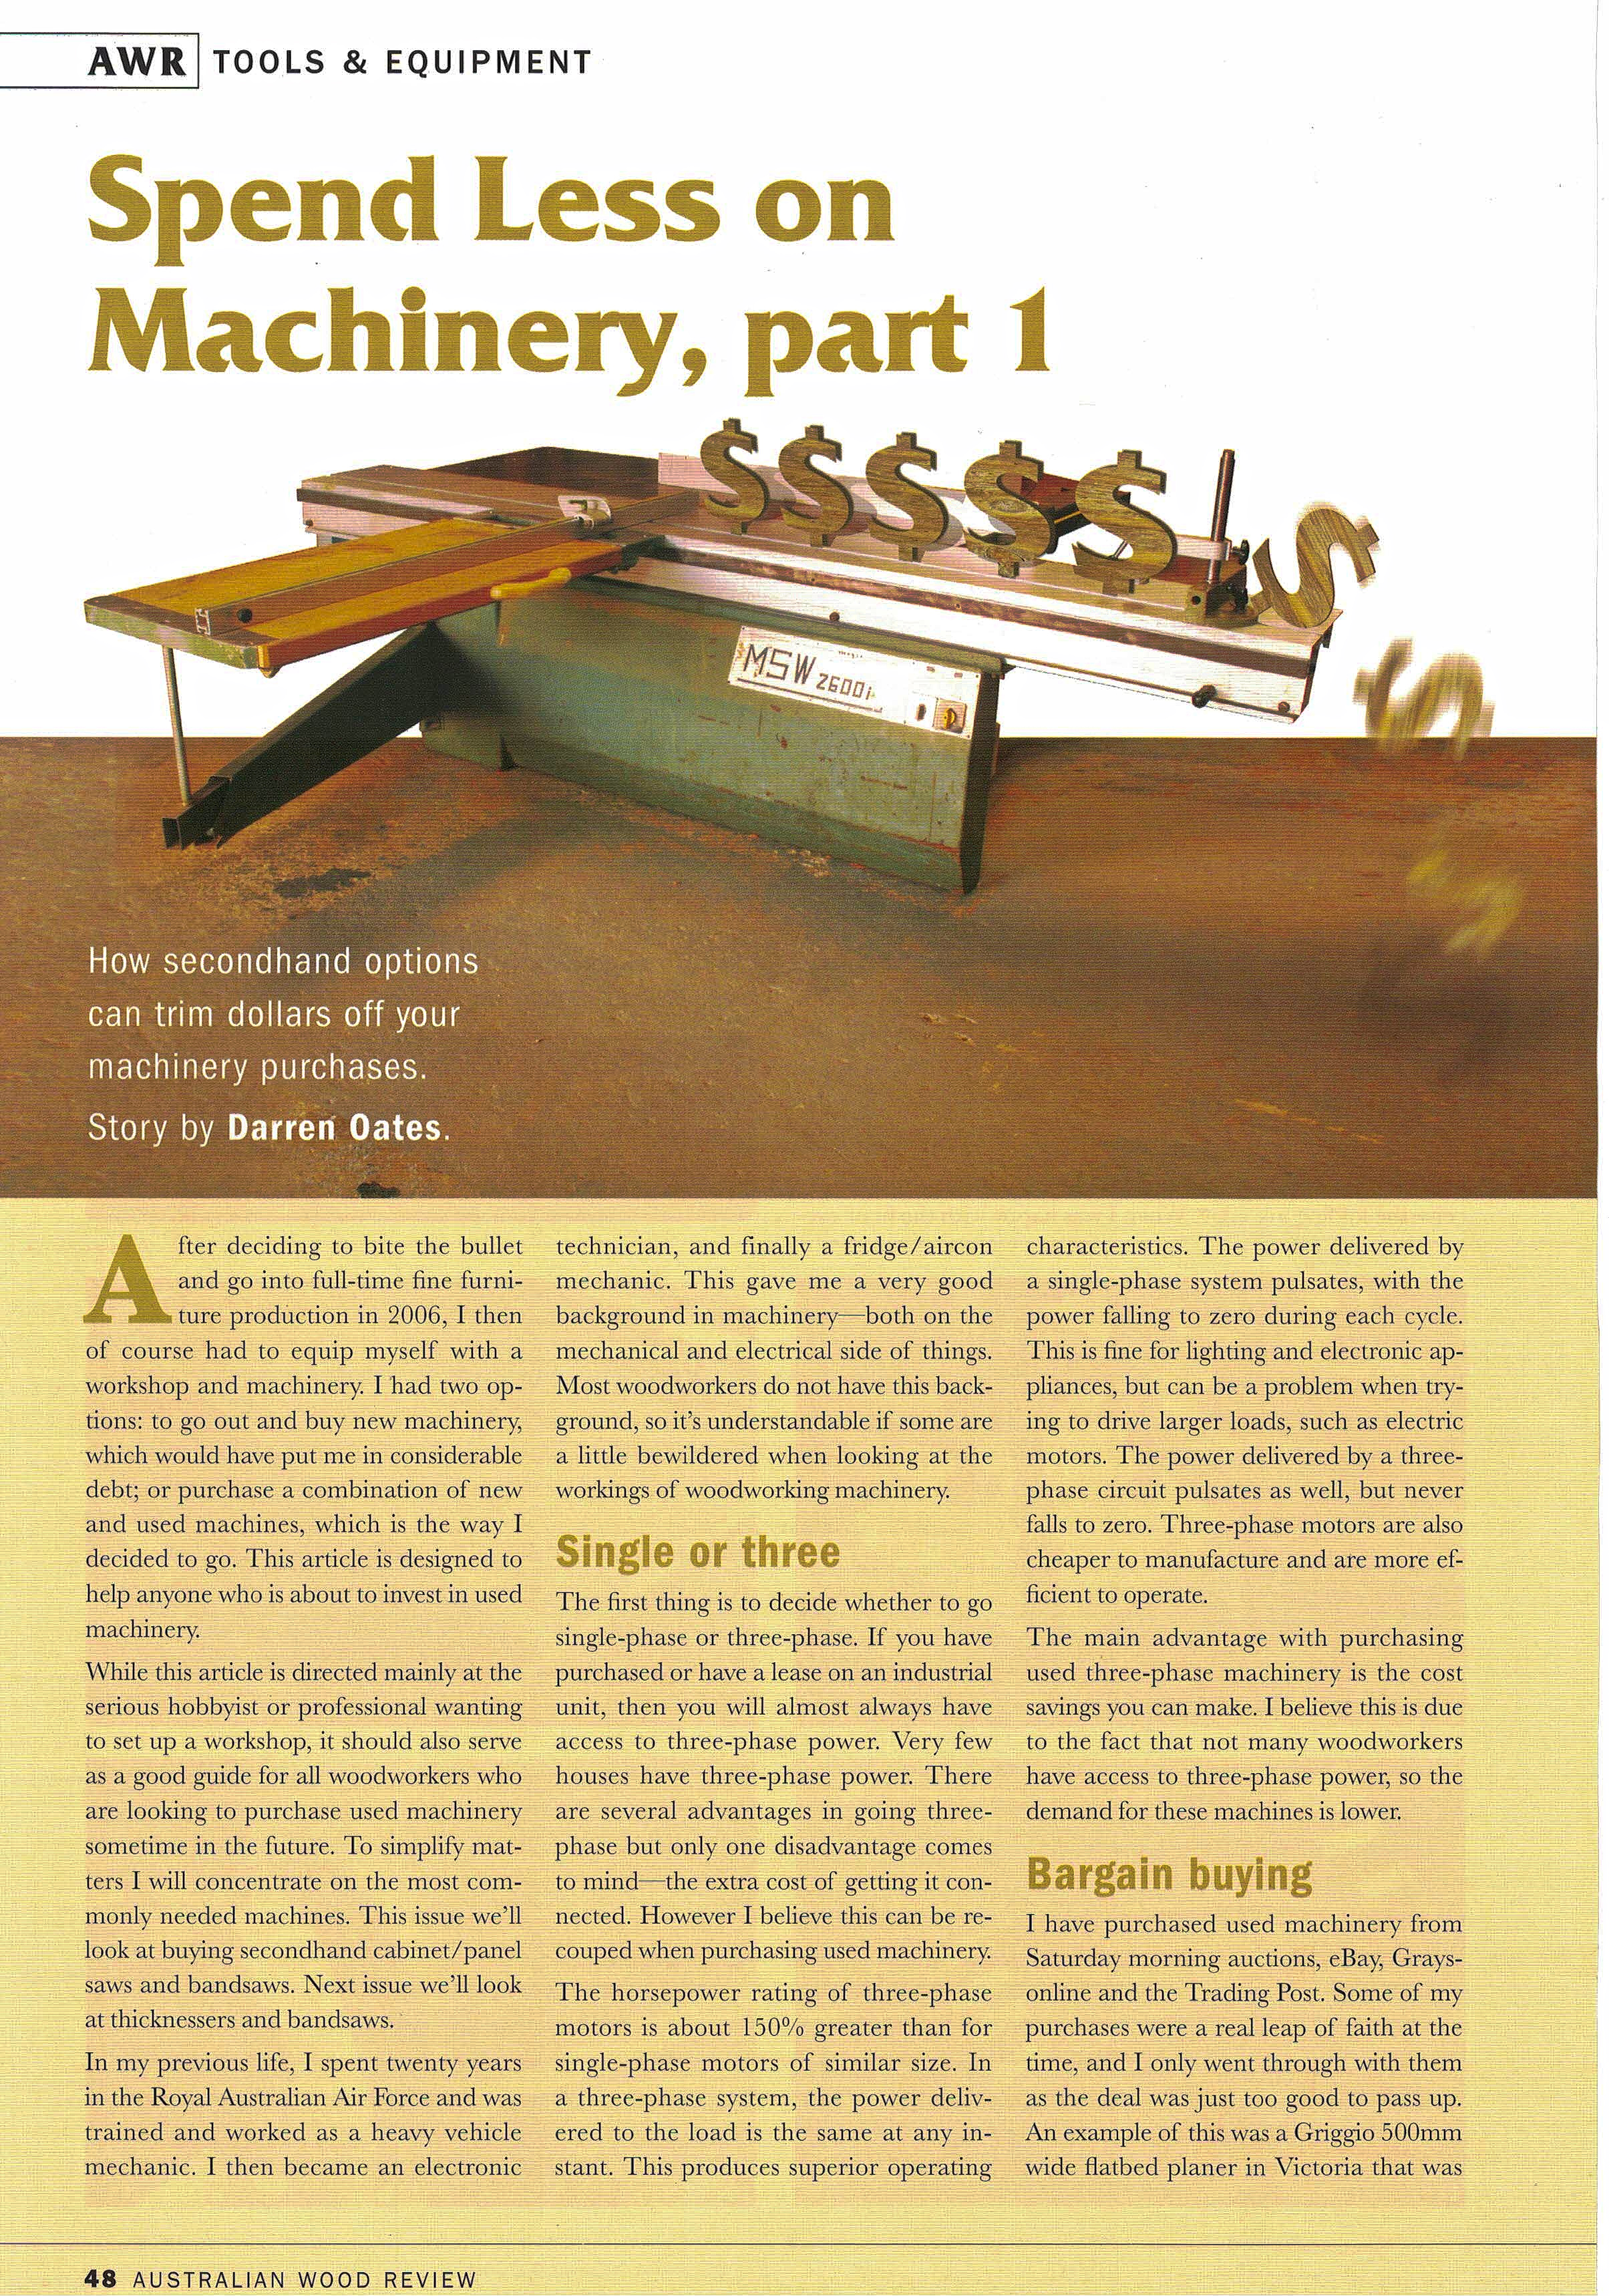 Australian Wood Review Issue No. 71b